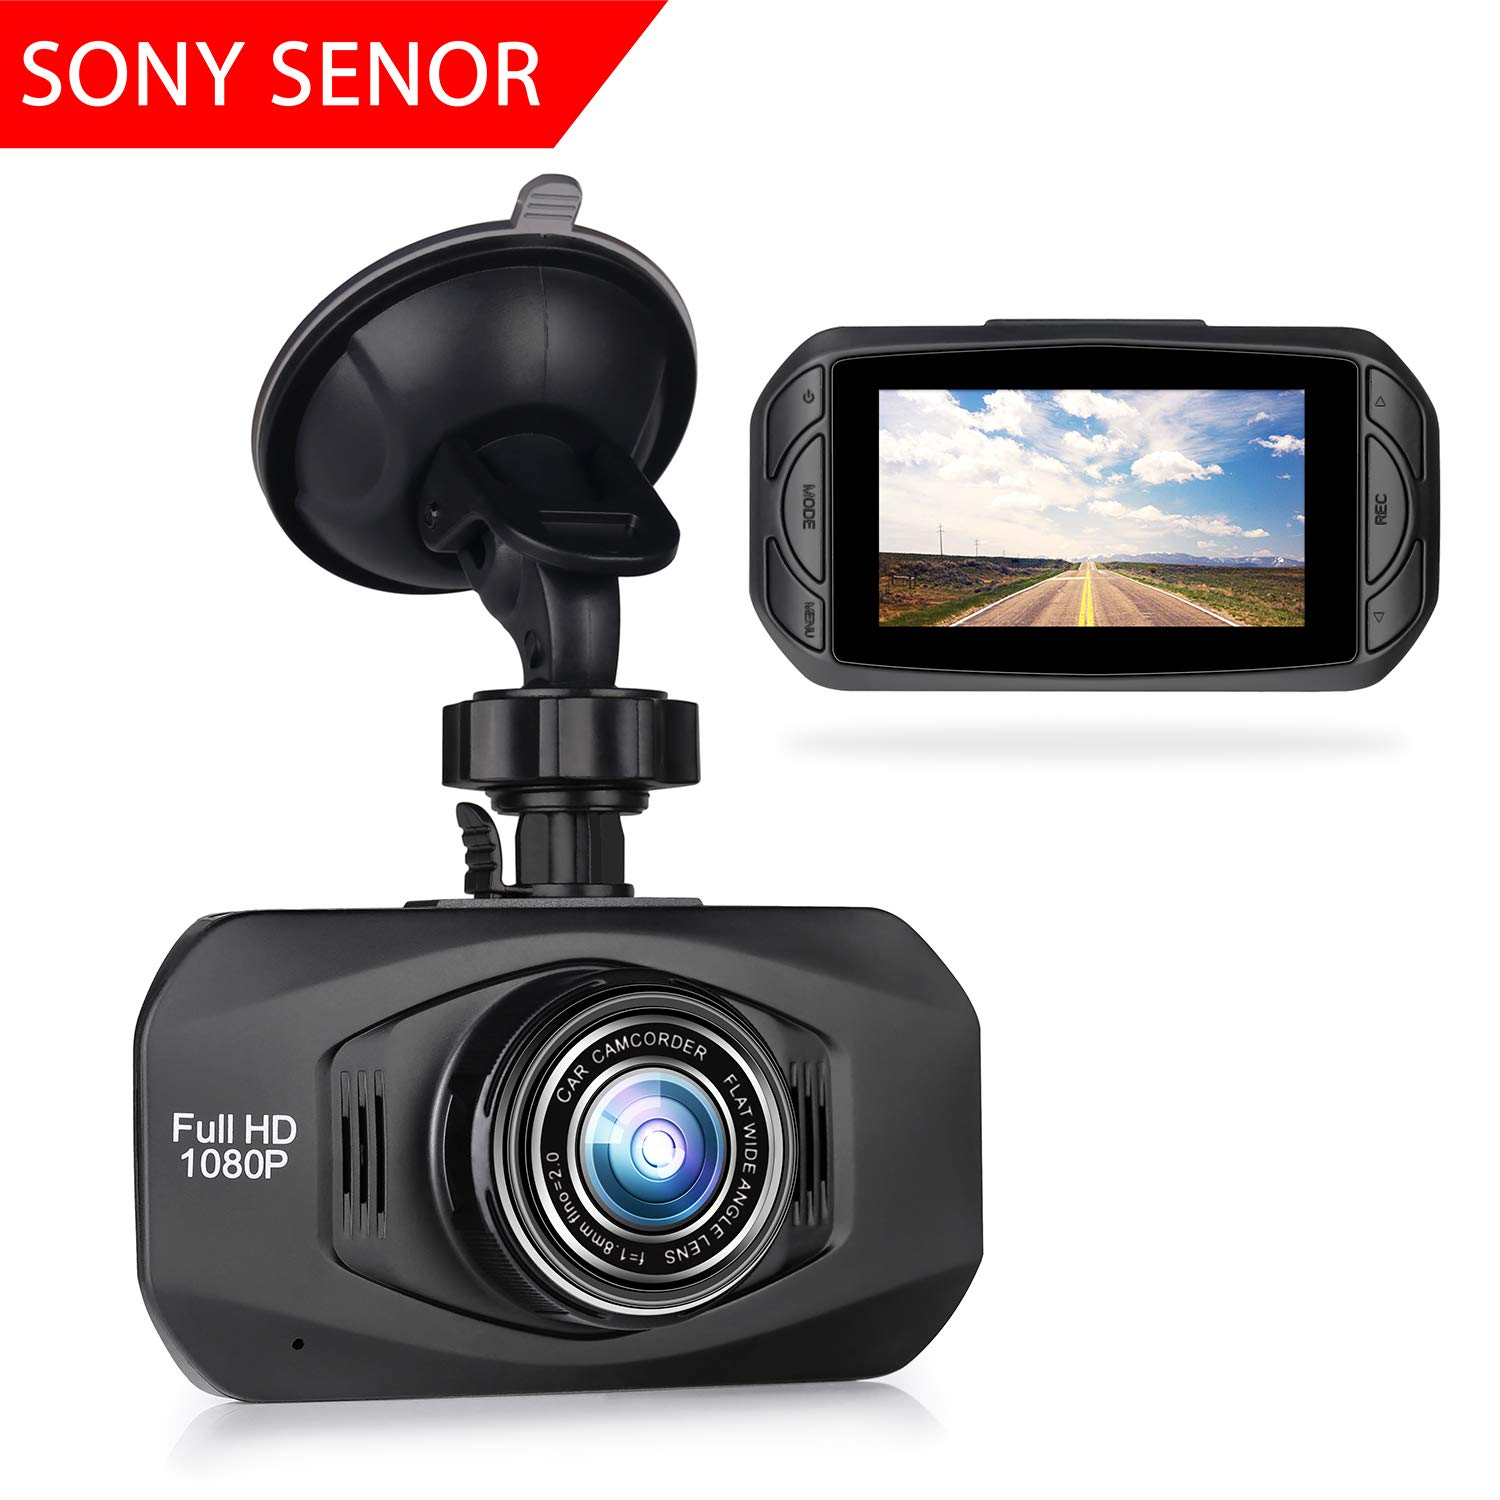 TIMPROVE Dash Cam 1080P FHD DVR Recorder Car Dashboard Camera with Sony IM323 Sensor, 2.7' LCD Screen, 6-Lane 170° Wide Angle Lens, WDR, G-Sensor, Motion Detection and Super-Sharp Night Vision 2.7 LCD Screen T47